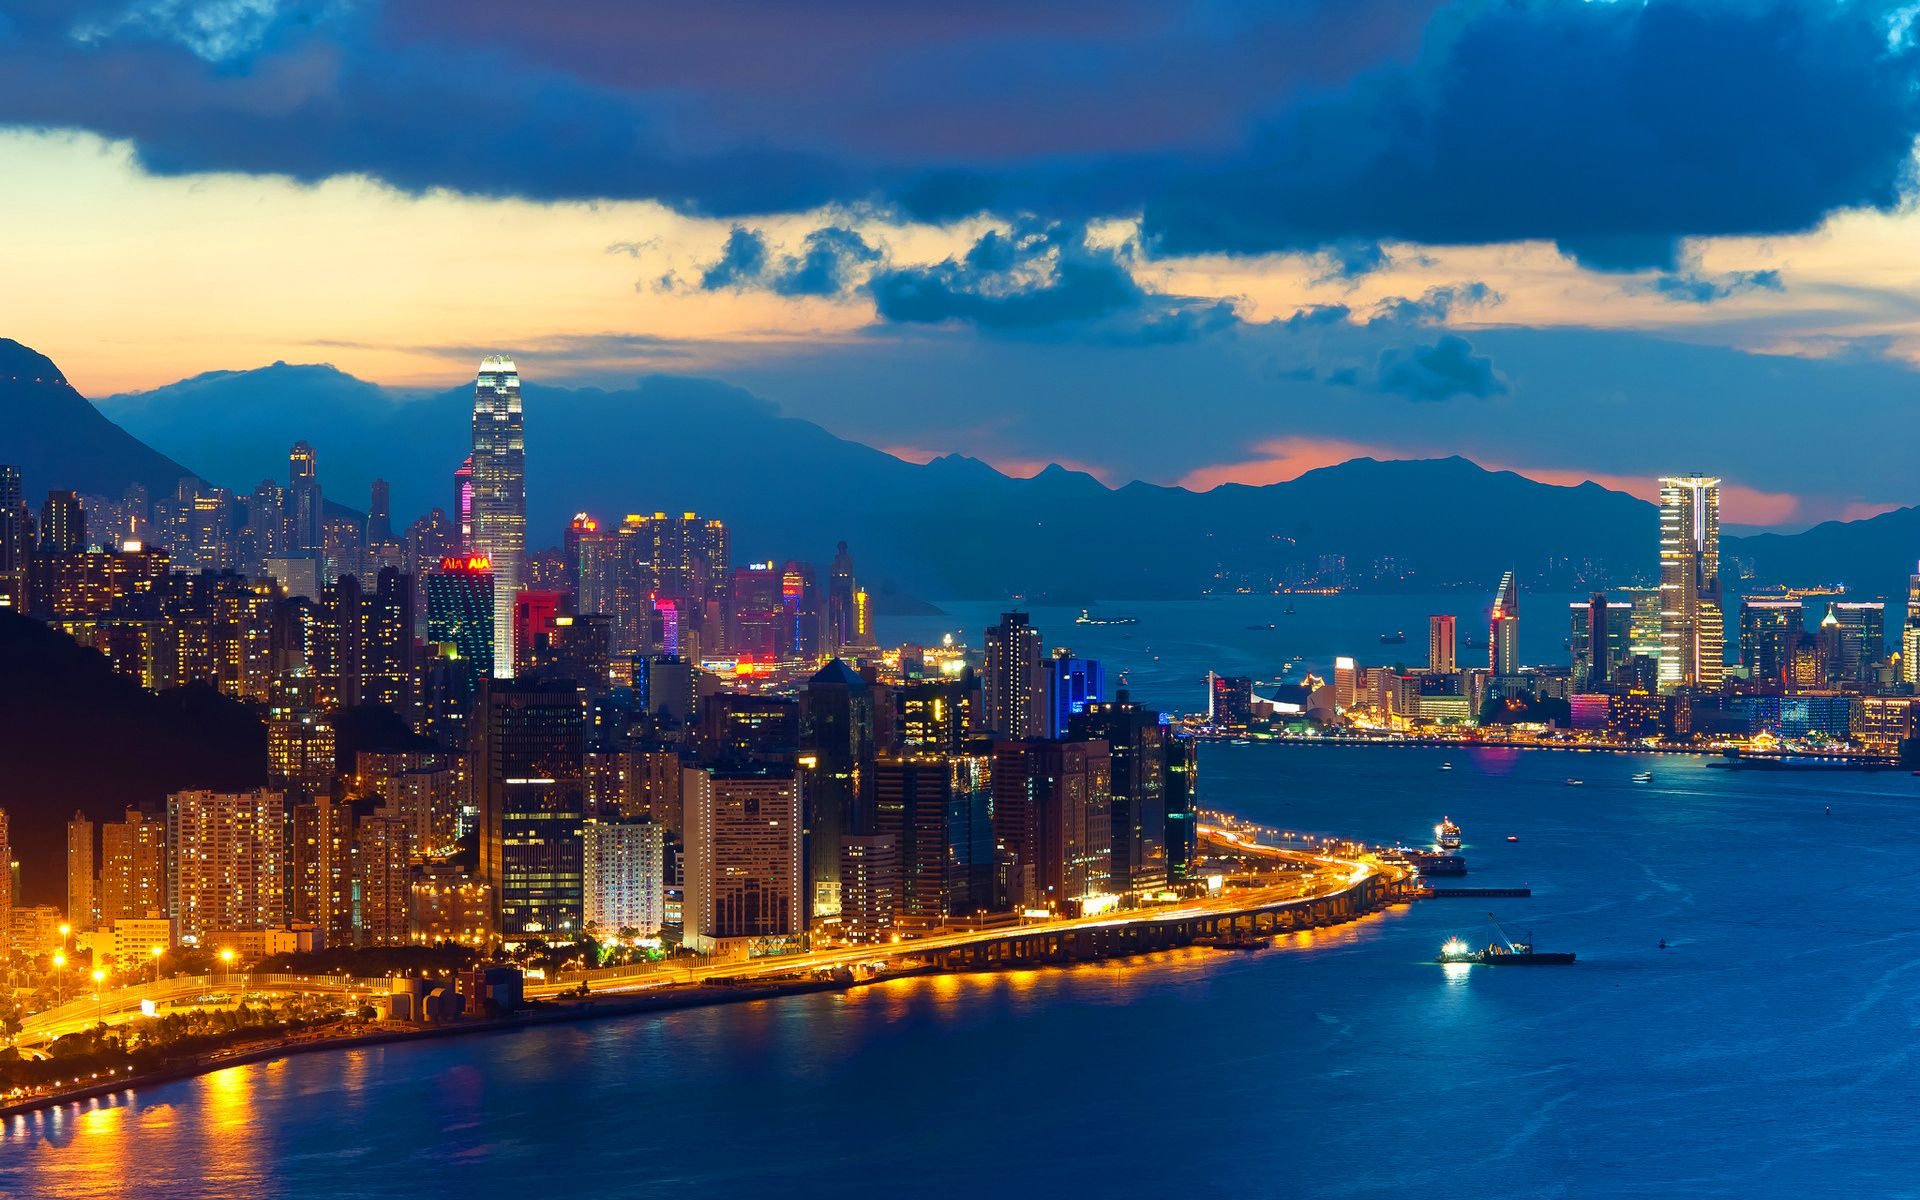 megacity hong kong 1 | Cool places to visit, Hong kong night ...